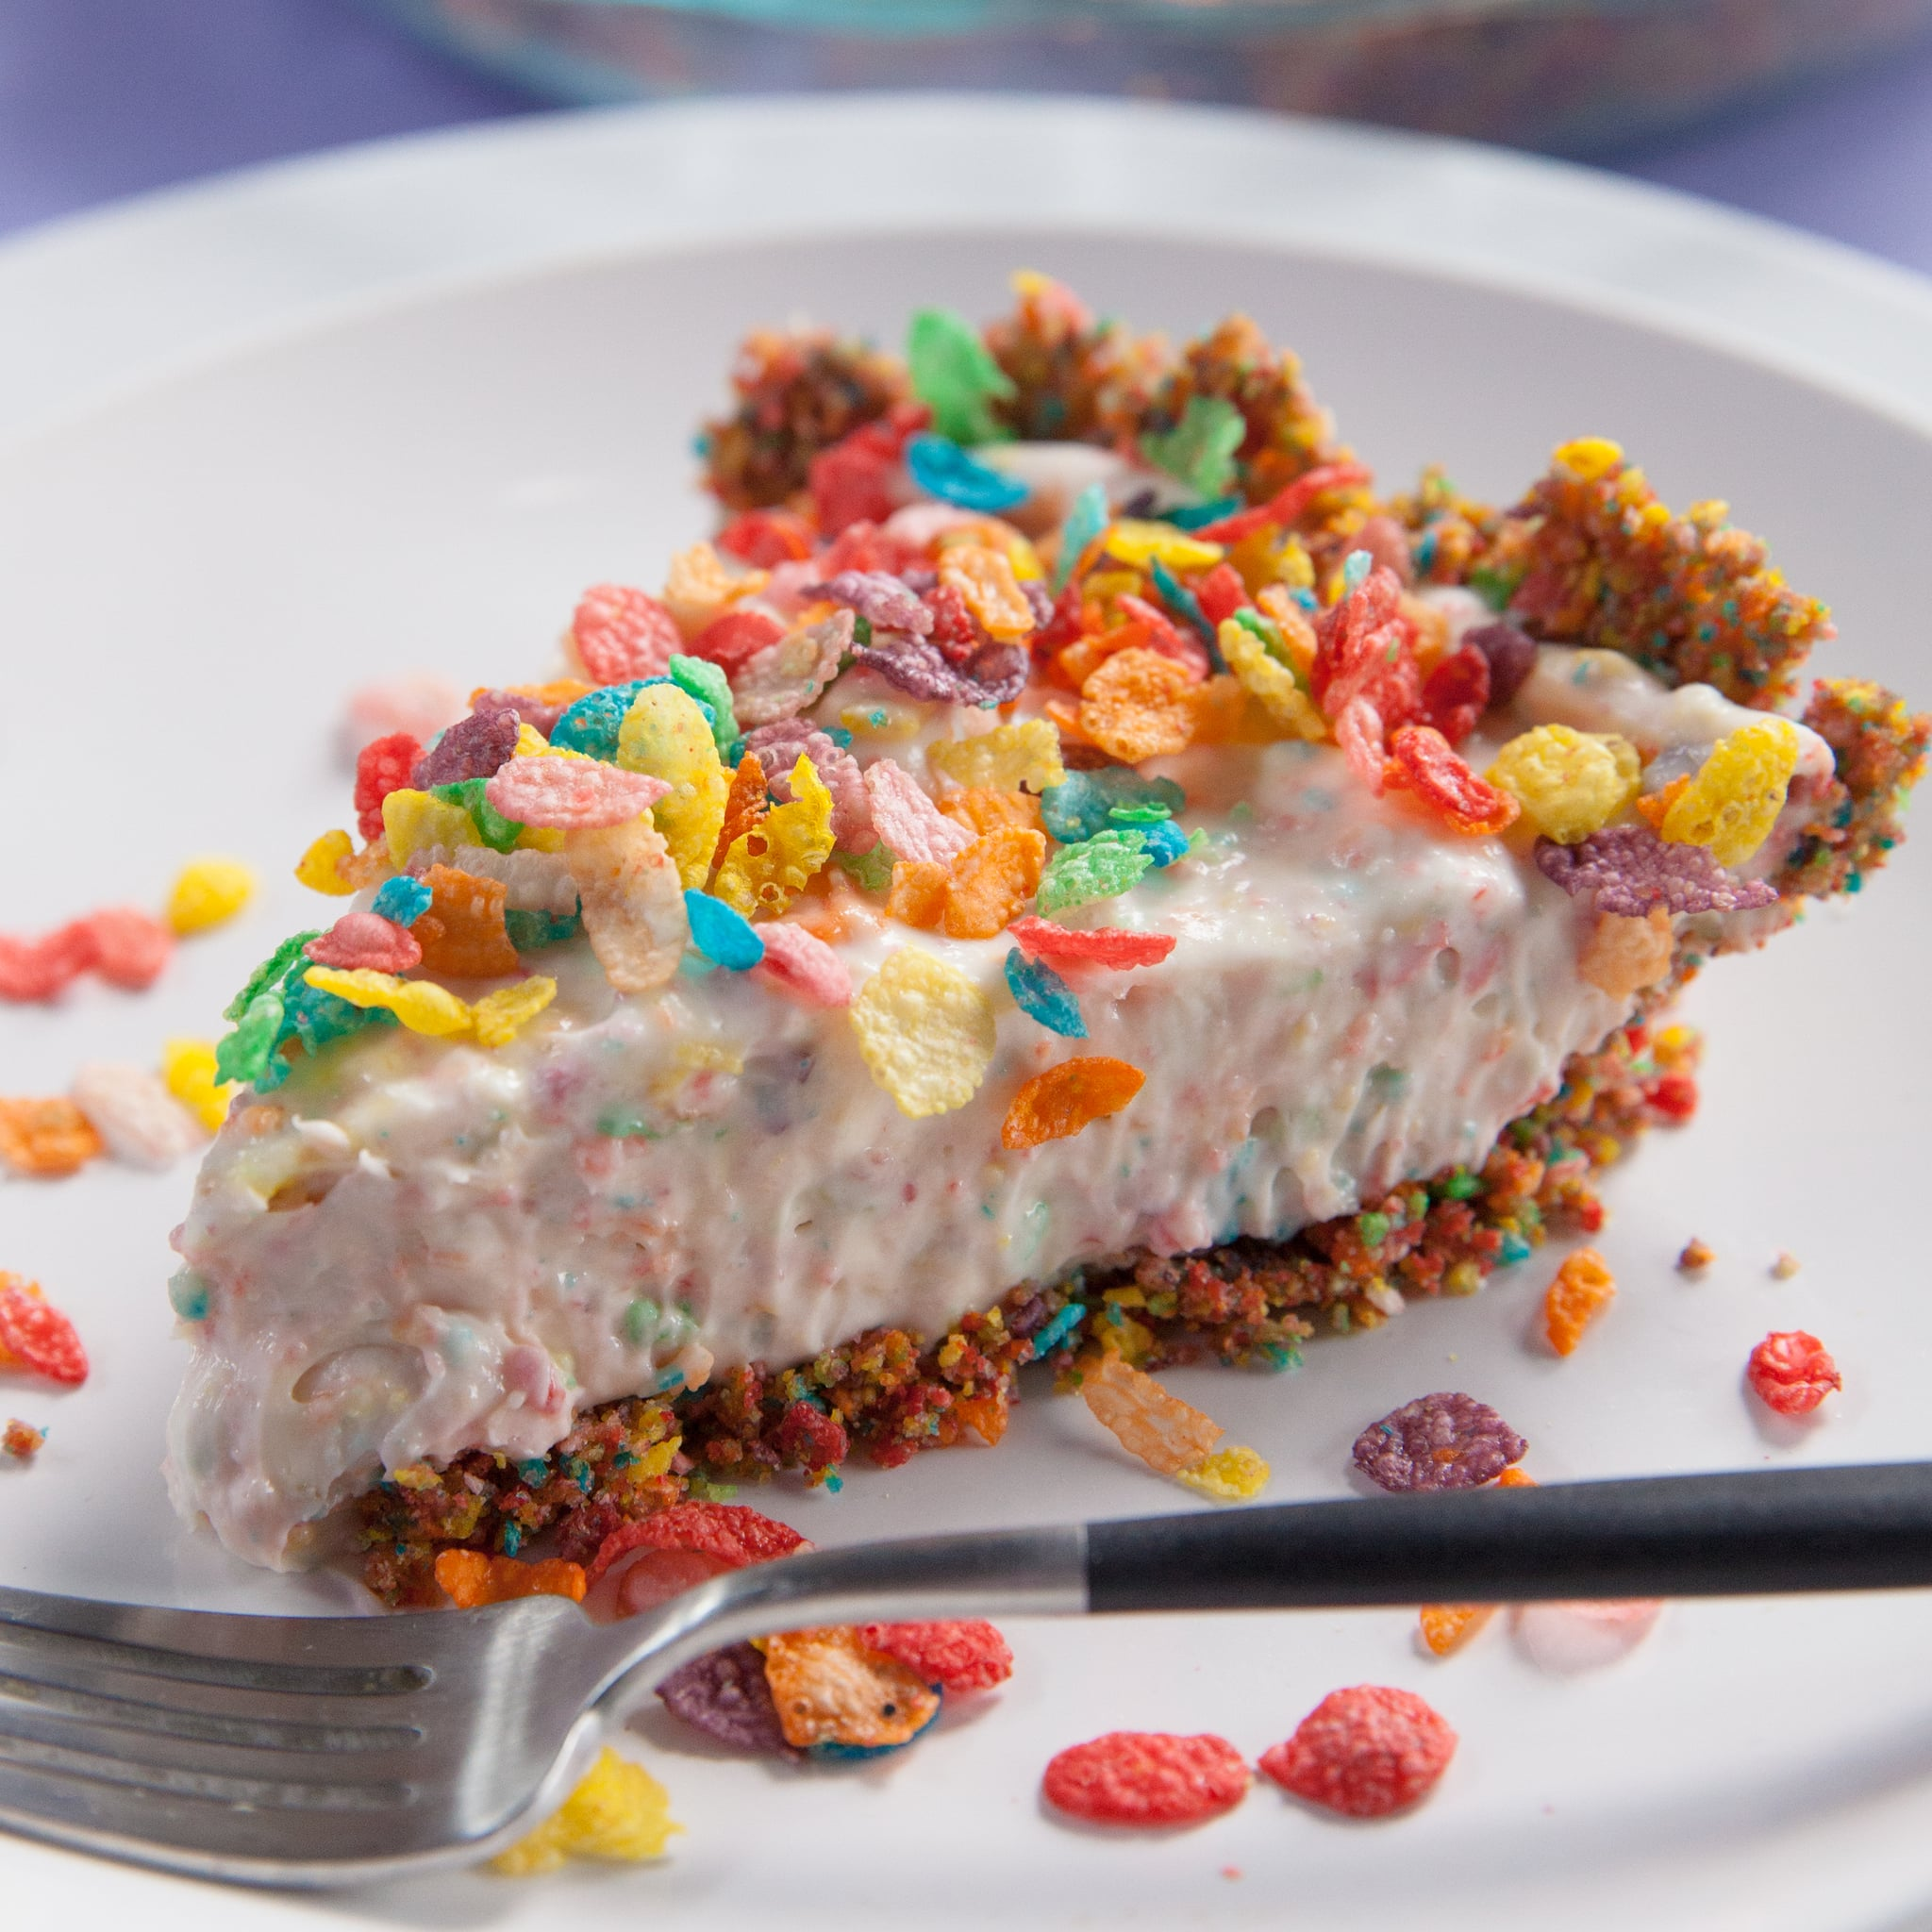 Fruity Pebbles No-Bake Cheesecake Recipe